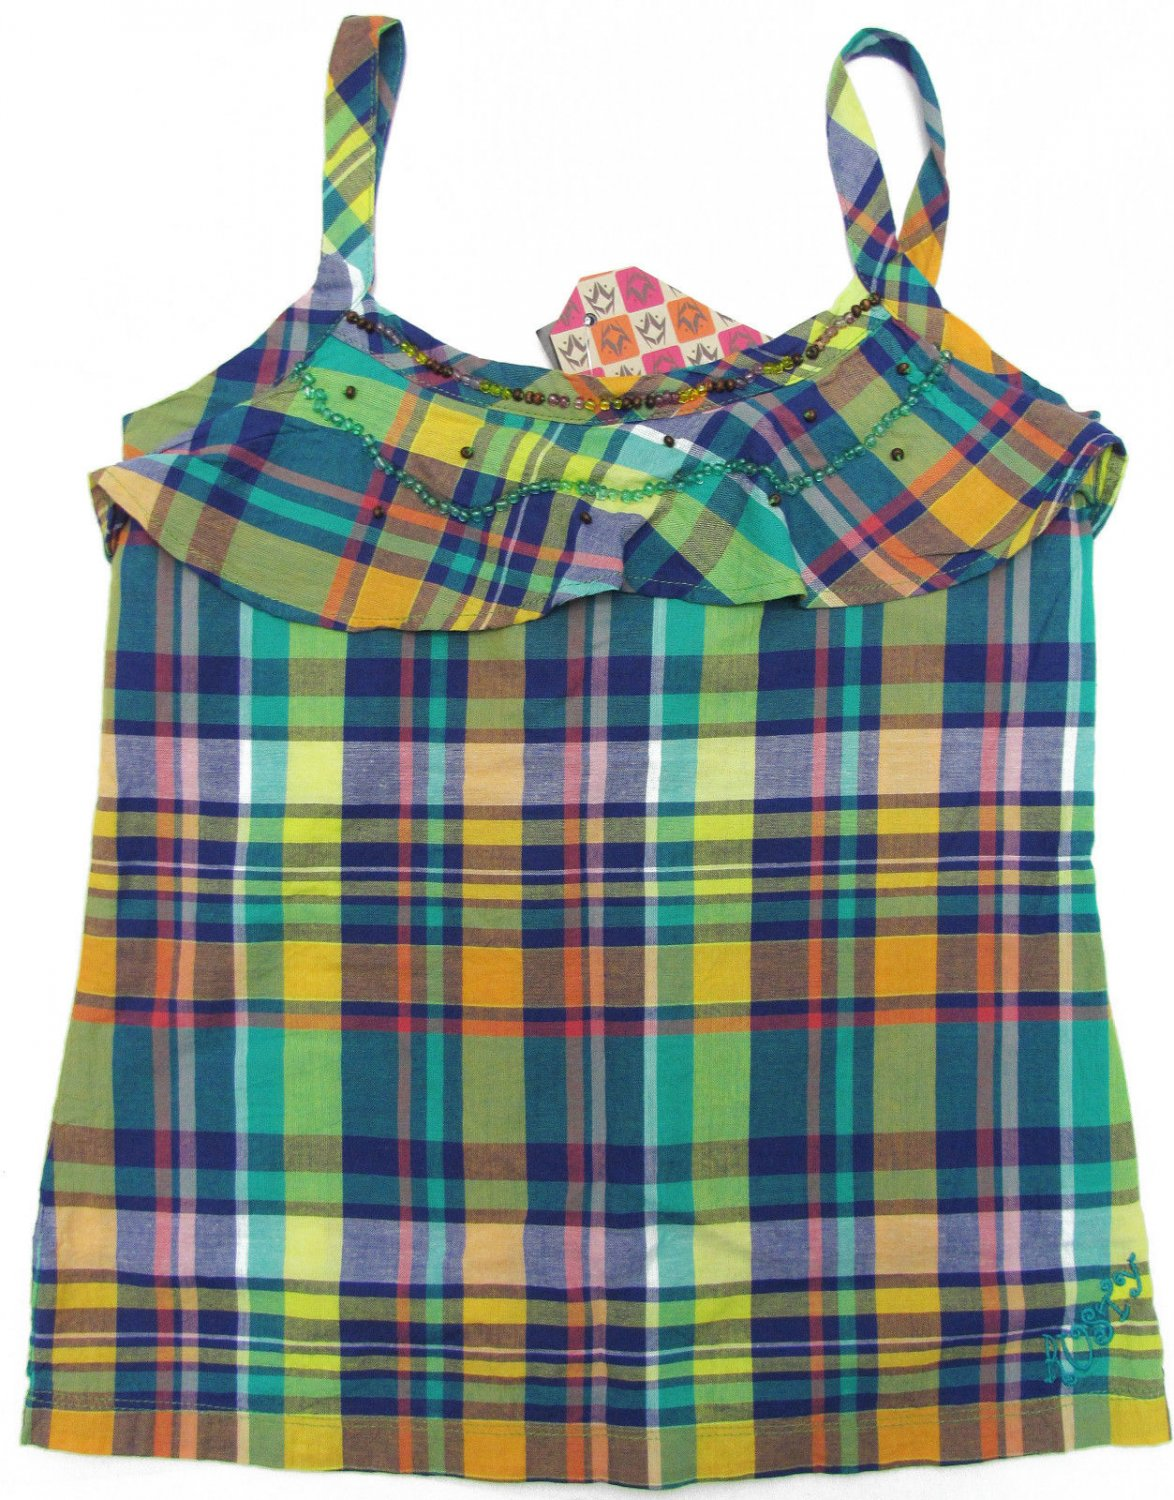 Rusty Girls M Day Tripper Green and Blue Plaid Tank Top Shirt New